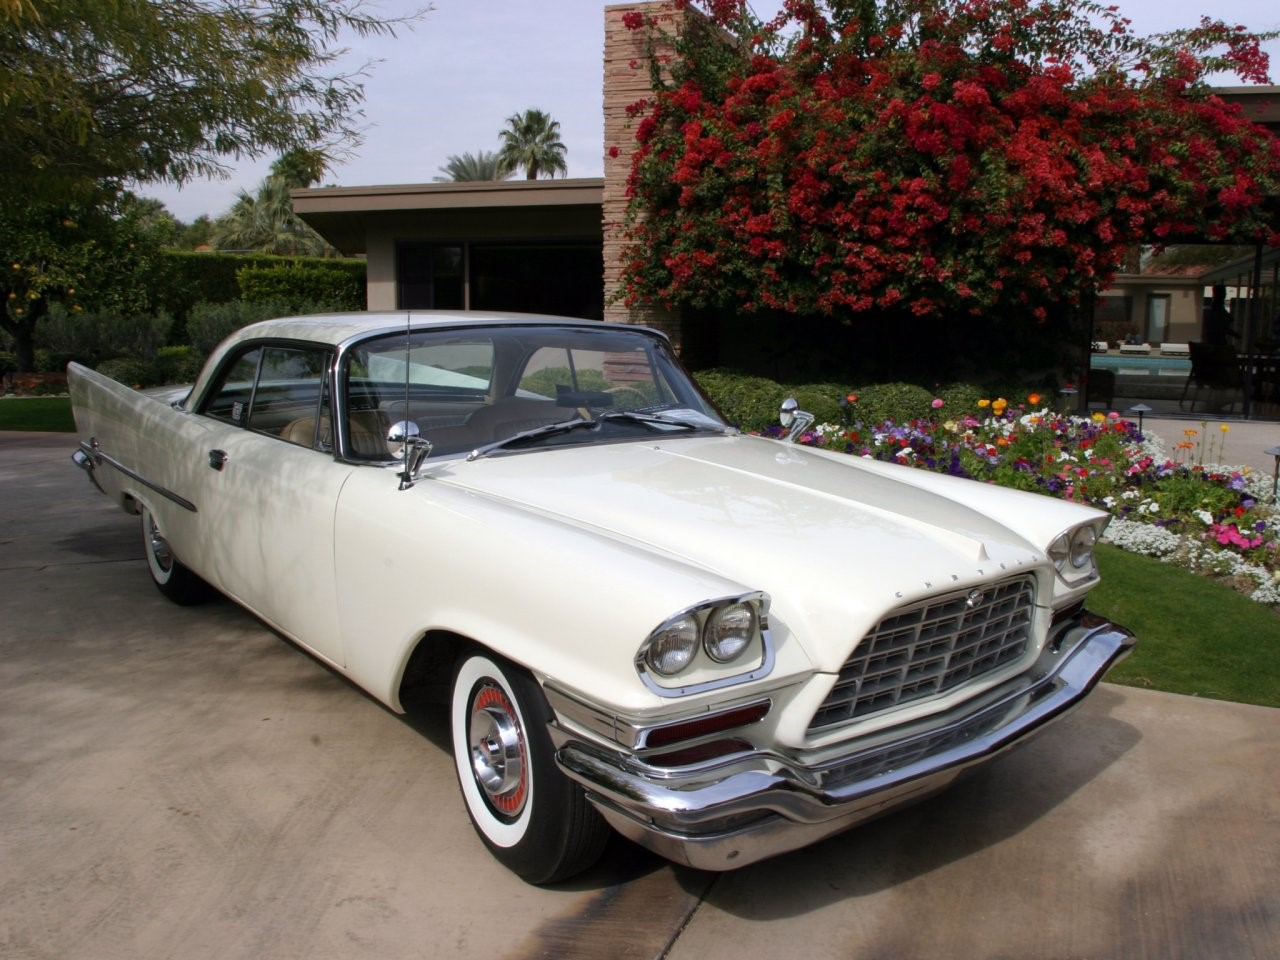 1958 Chrysler 300D hardtop coupé